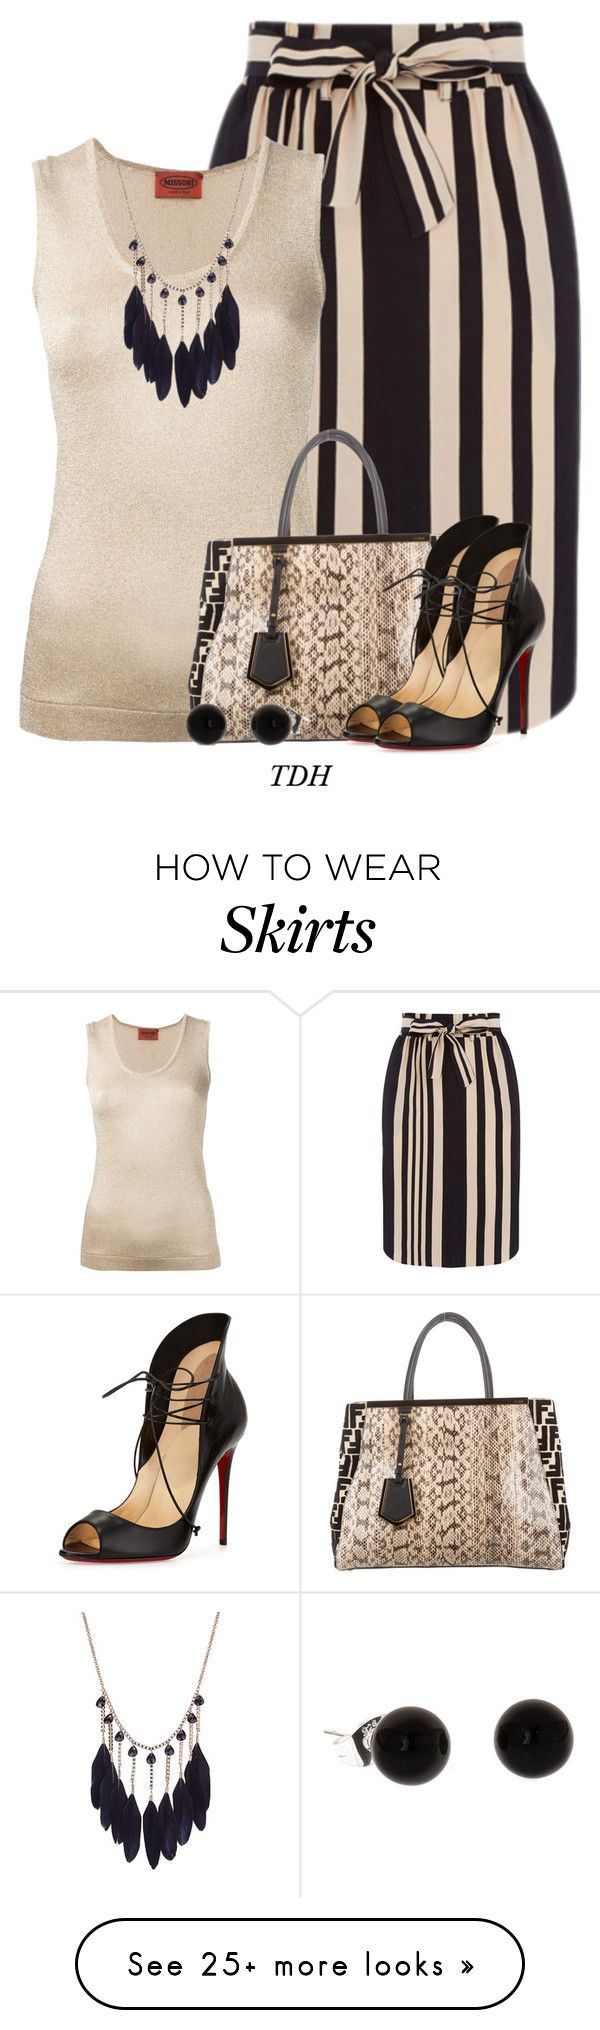 """""""Striped Skirt"""" by talvadh on Polyvore featuring Missoni, Fendi and Christian Louboutin"""